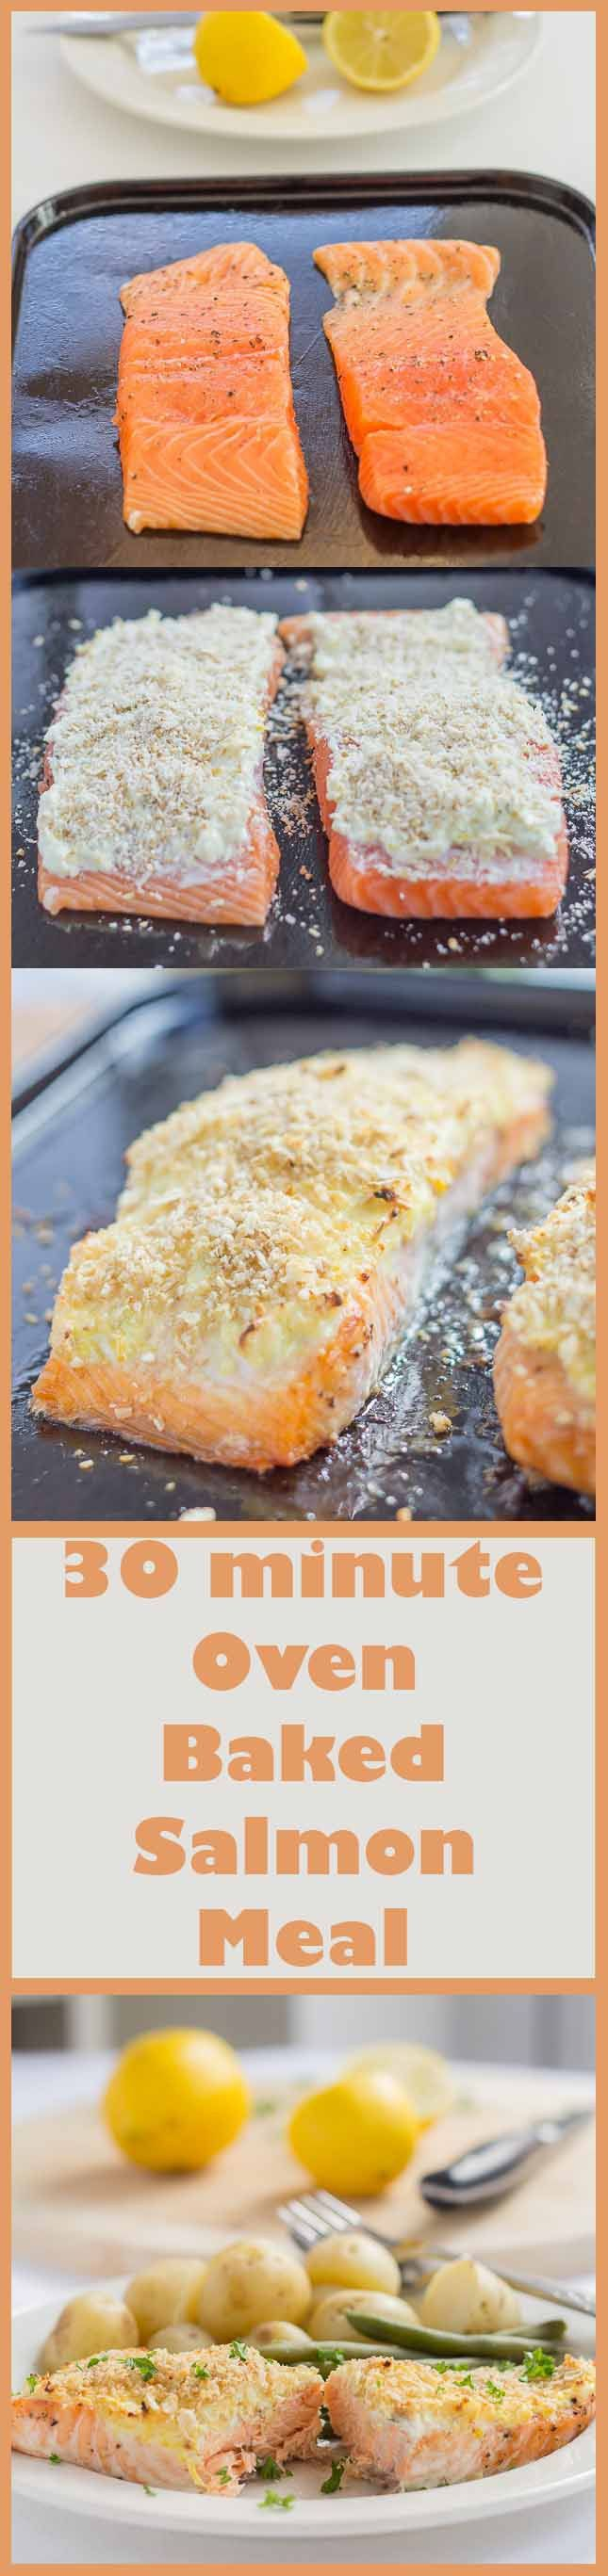 Best 25 oven baked fish ideas on pinterest baked salmon for Oven baked fish recipes